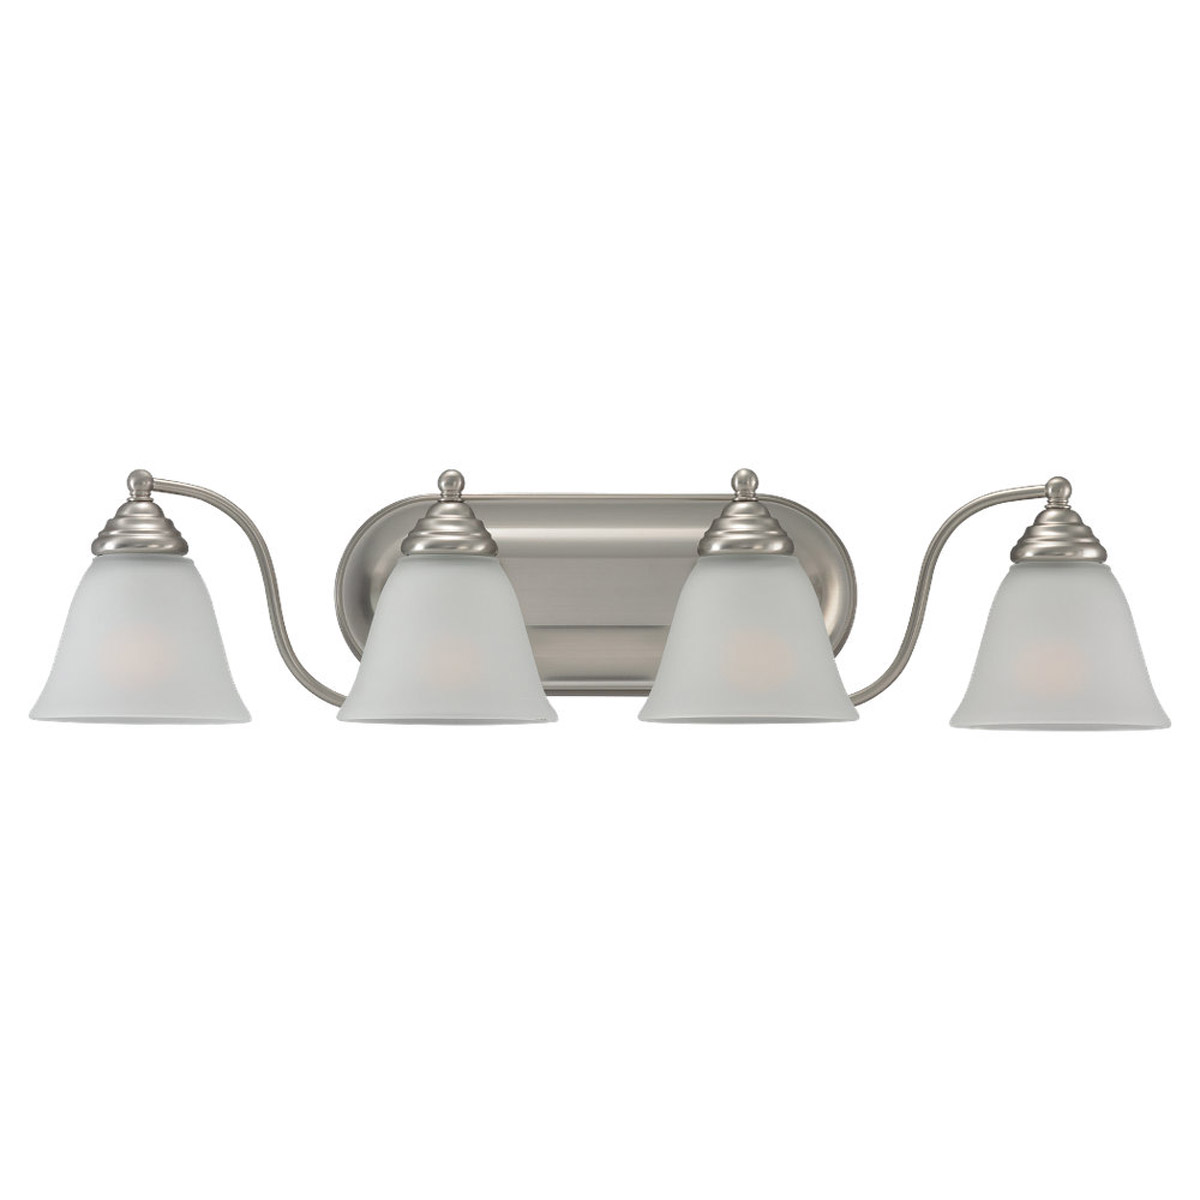 Sea Gull Lighting Albany 4 Light Bath Vanity in Brushed Nickel 44578-962